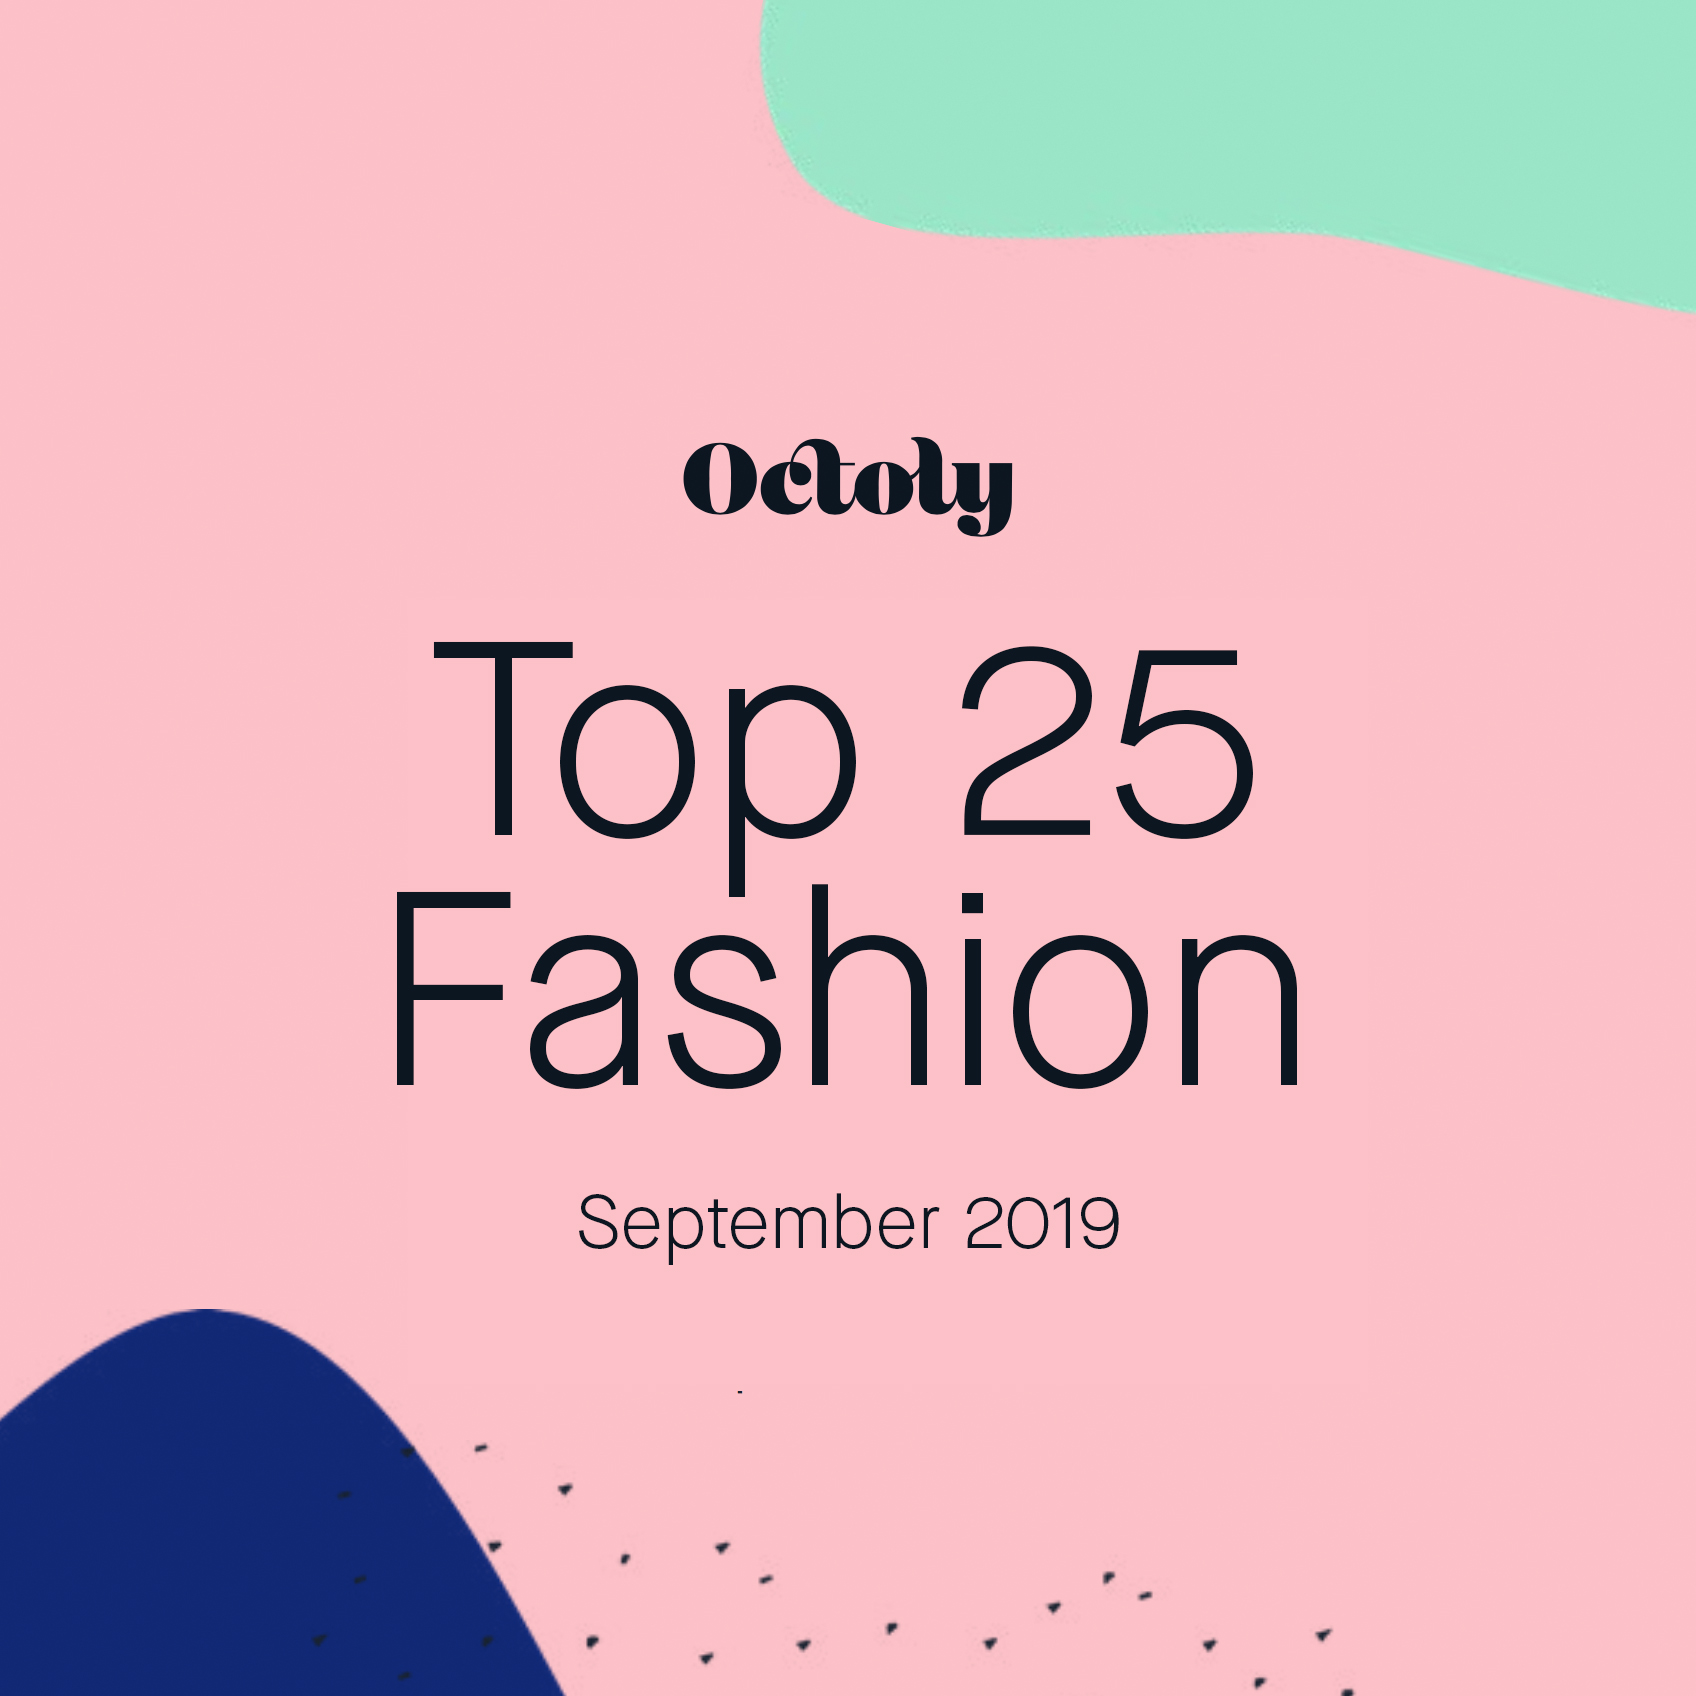 Fashion Rankings Brands Top 25